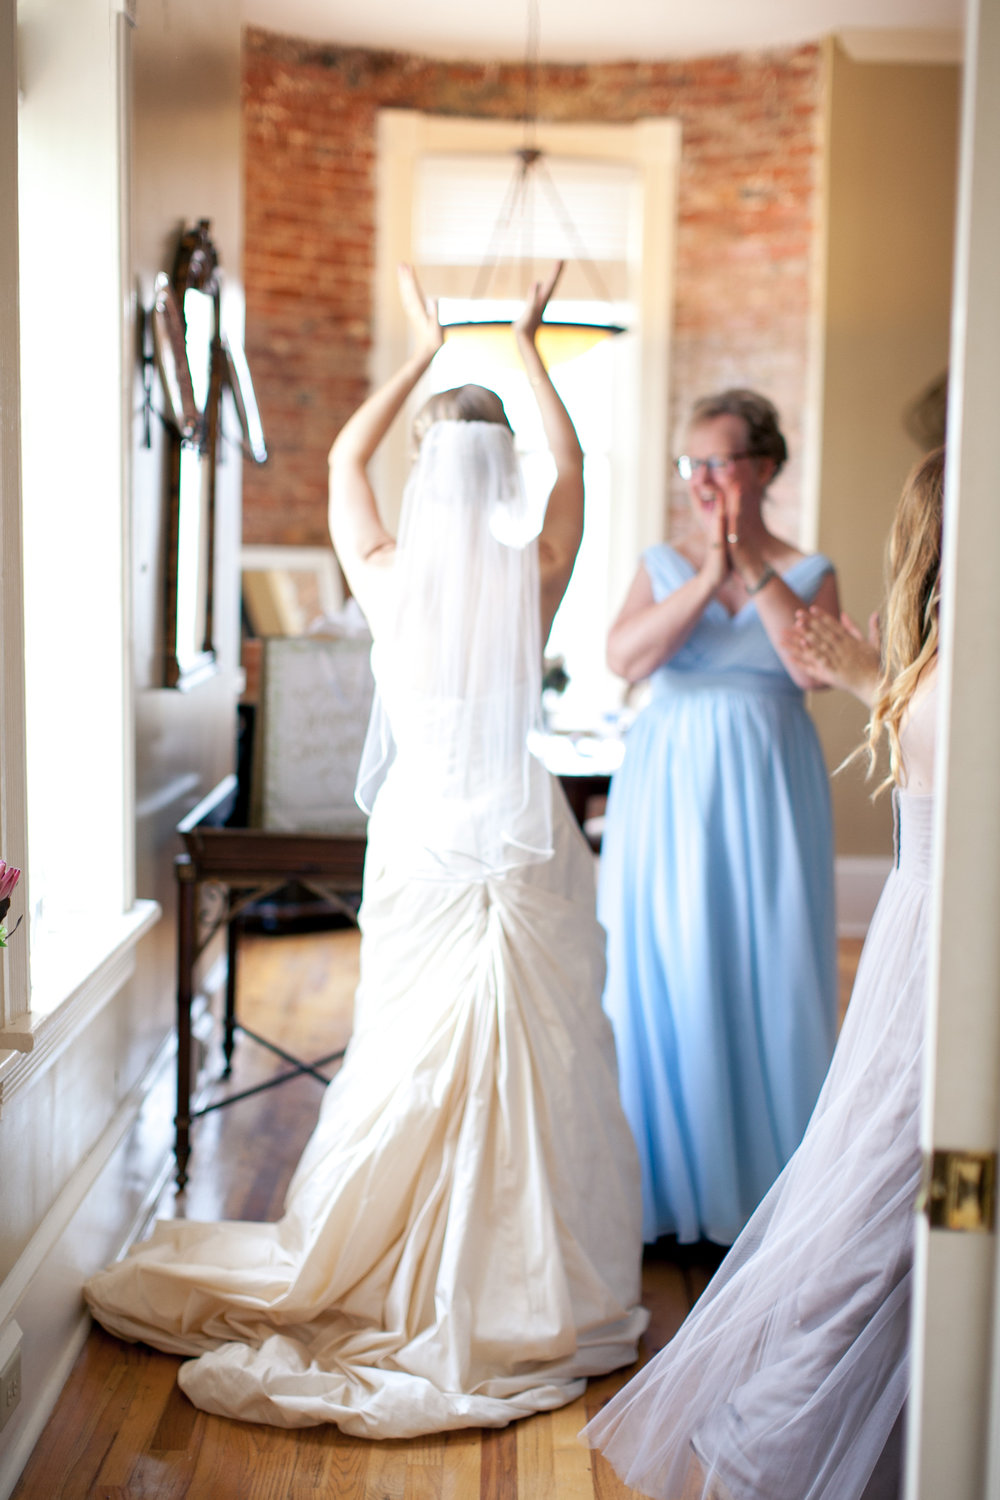 Bridal prep should be so fun for all brides. You can't even see Elena's face and her spirit radiates in this photo by  Kaitie Bryant .